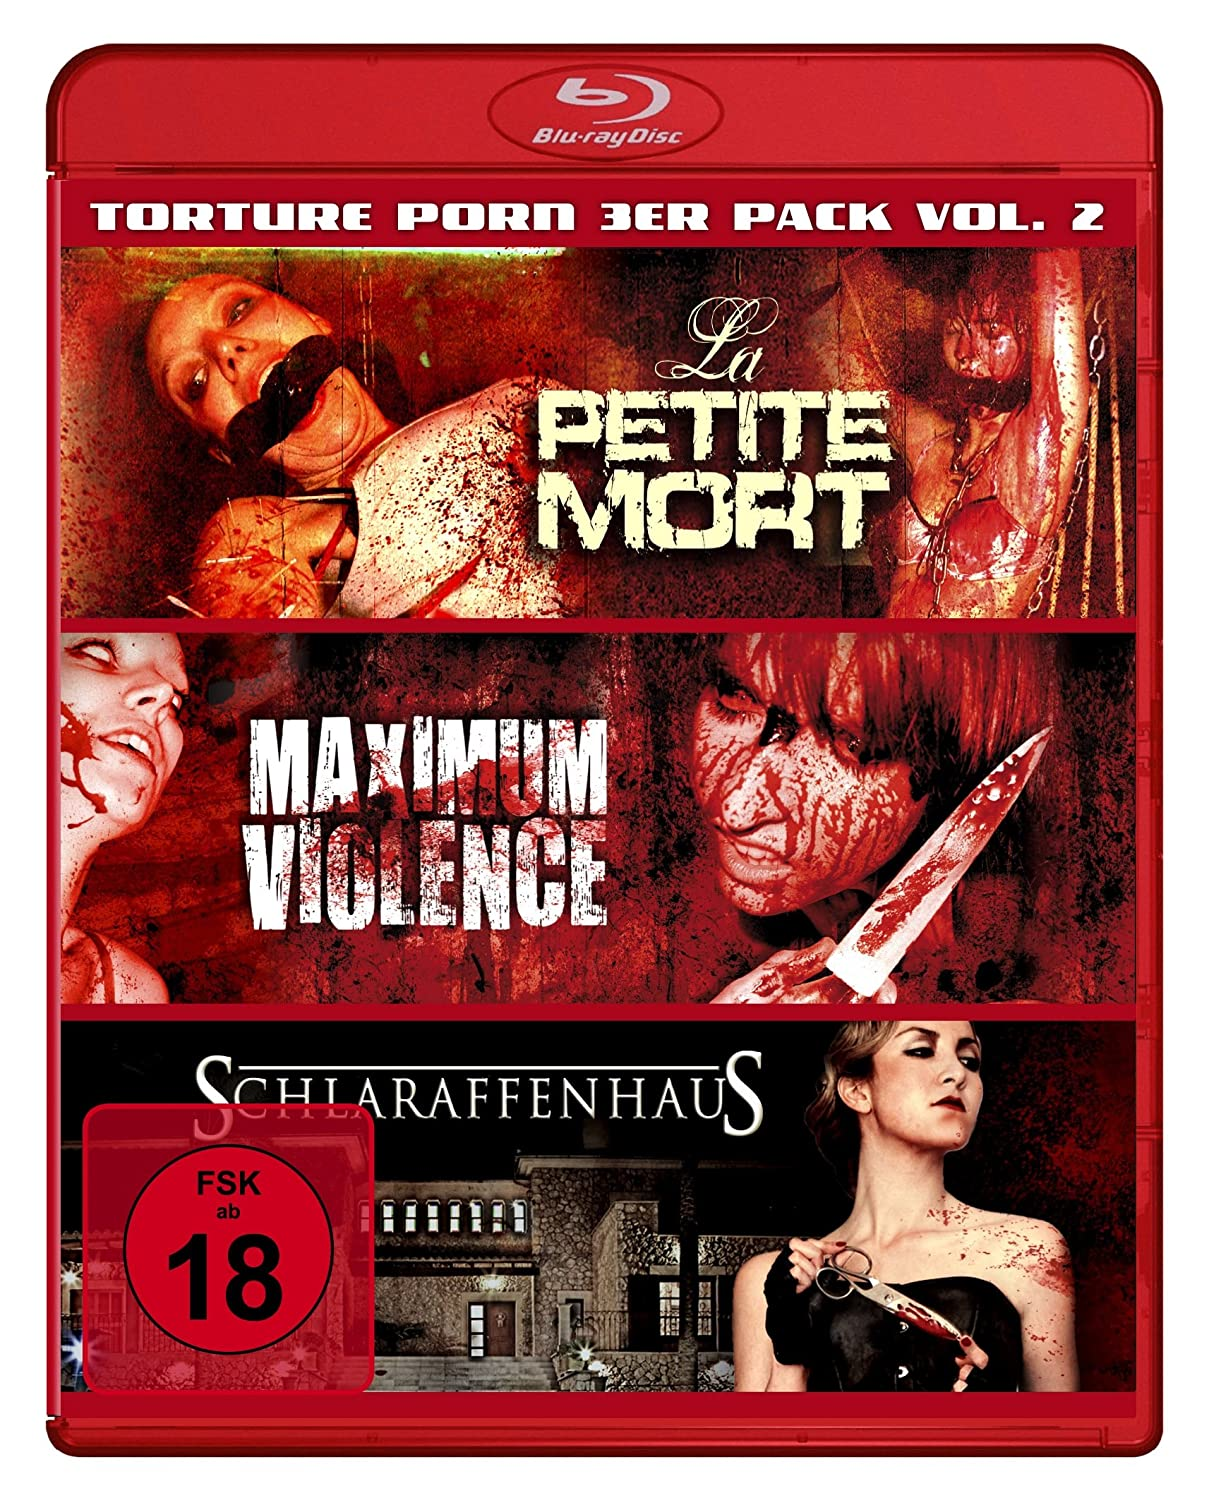 Amazon.com: Torture Porn Vol.2 3er Pack:Petite Mort/Maximum ...